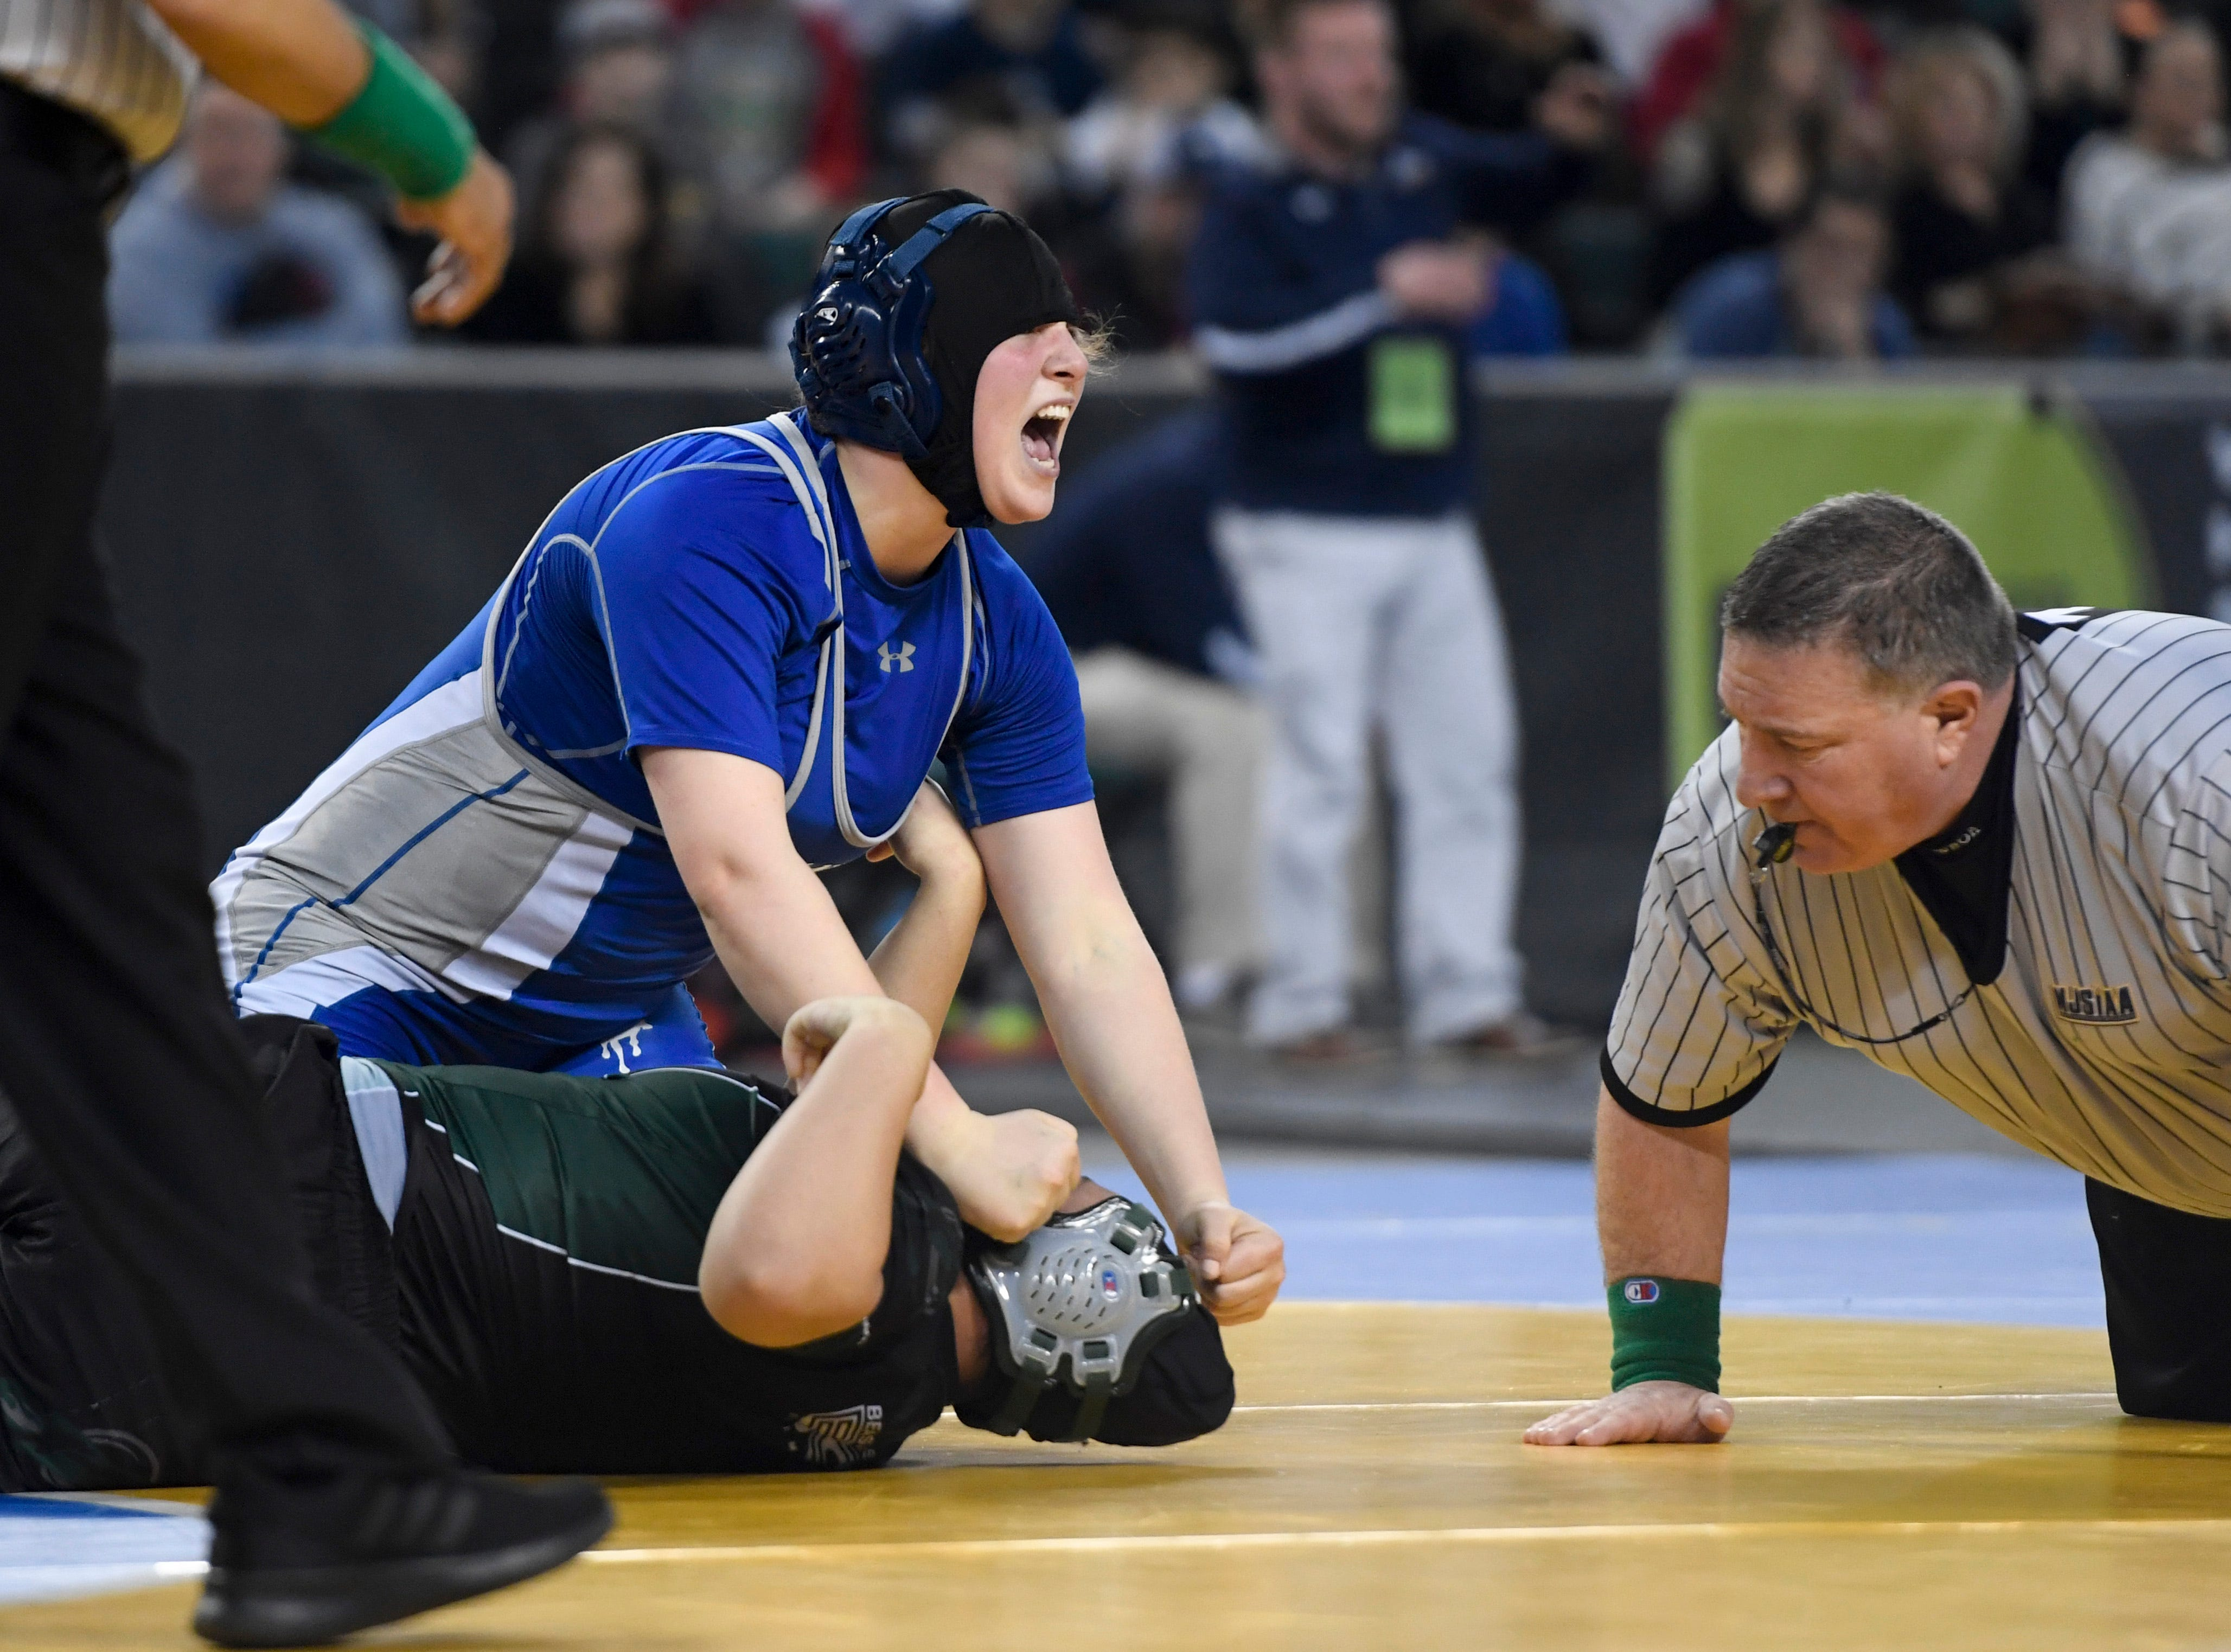 Erin Emery of Teaneck pins Mia Lazaurs of Raritan in the 185-pound final match of the NJSIAA state wrestling tournament on Saturday, March 2, 2019, in Atlantic City.